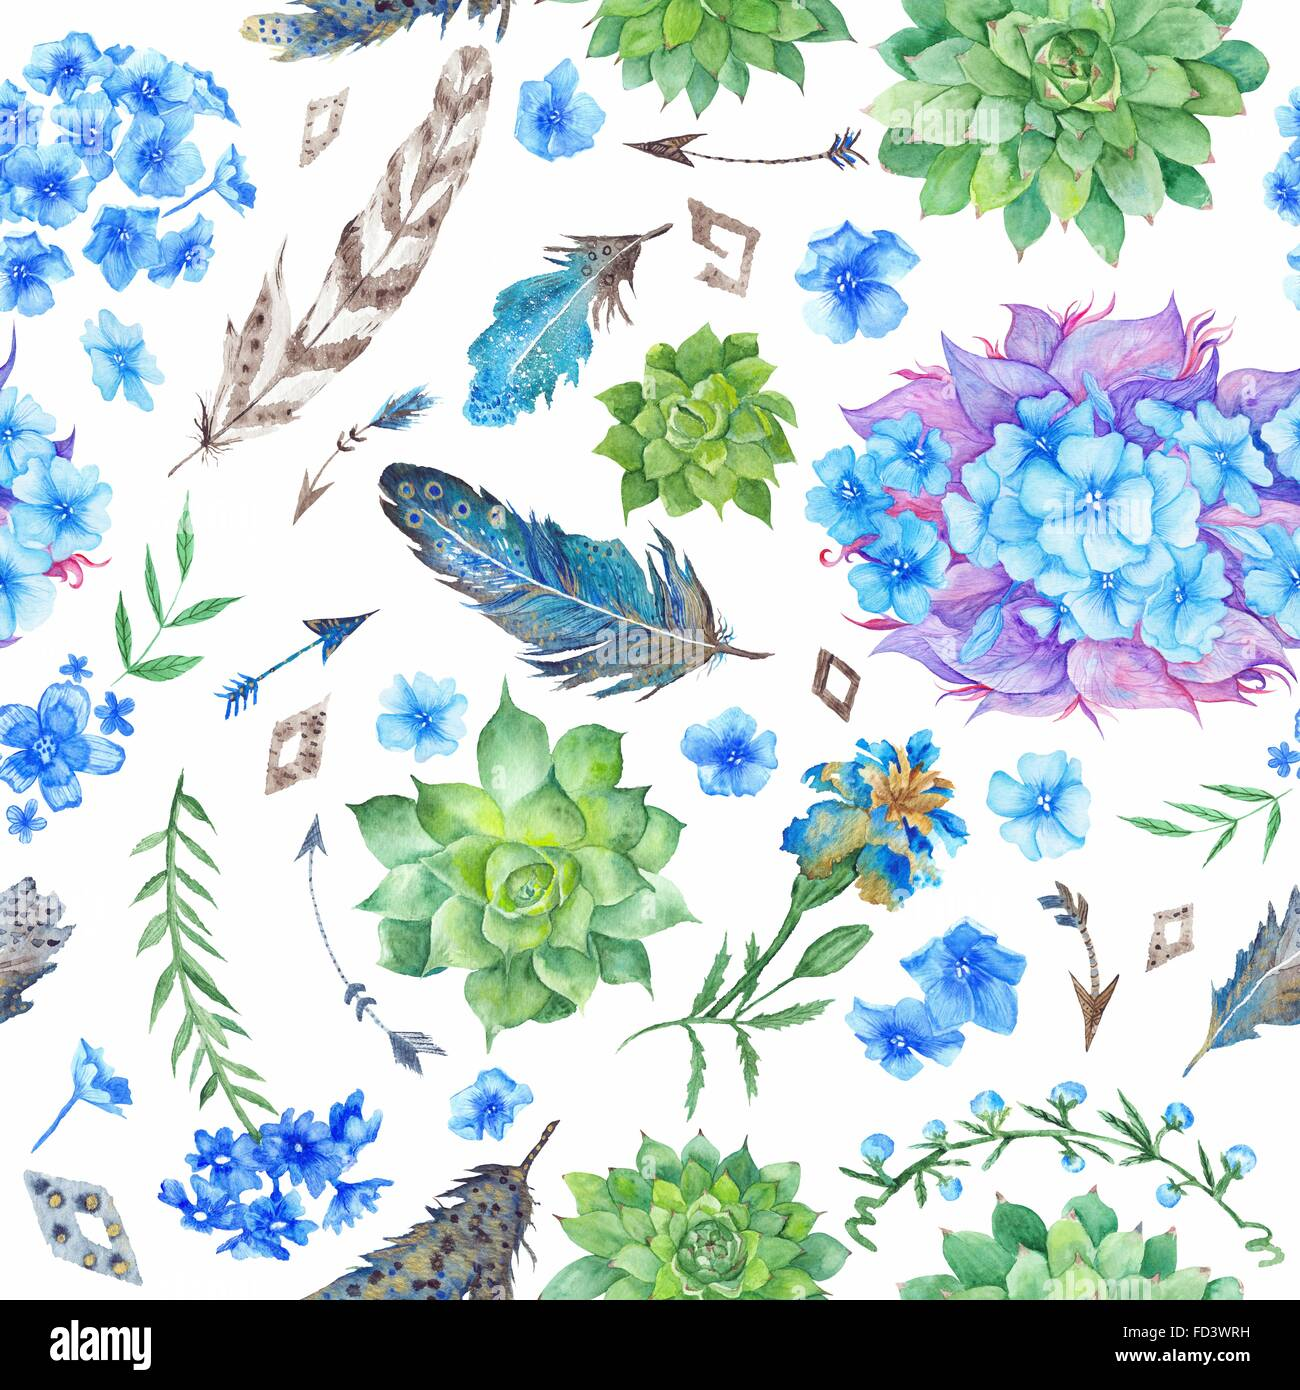 Forest Boho Style Illustration For Wallpaper Textile Event Design With Feathers Succulents Flowers And Arrows